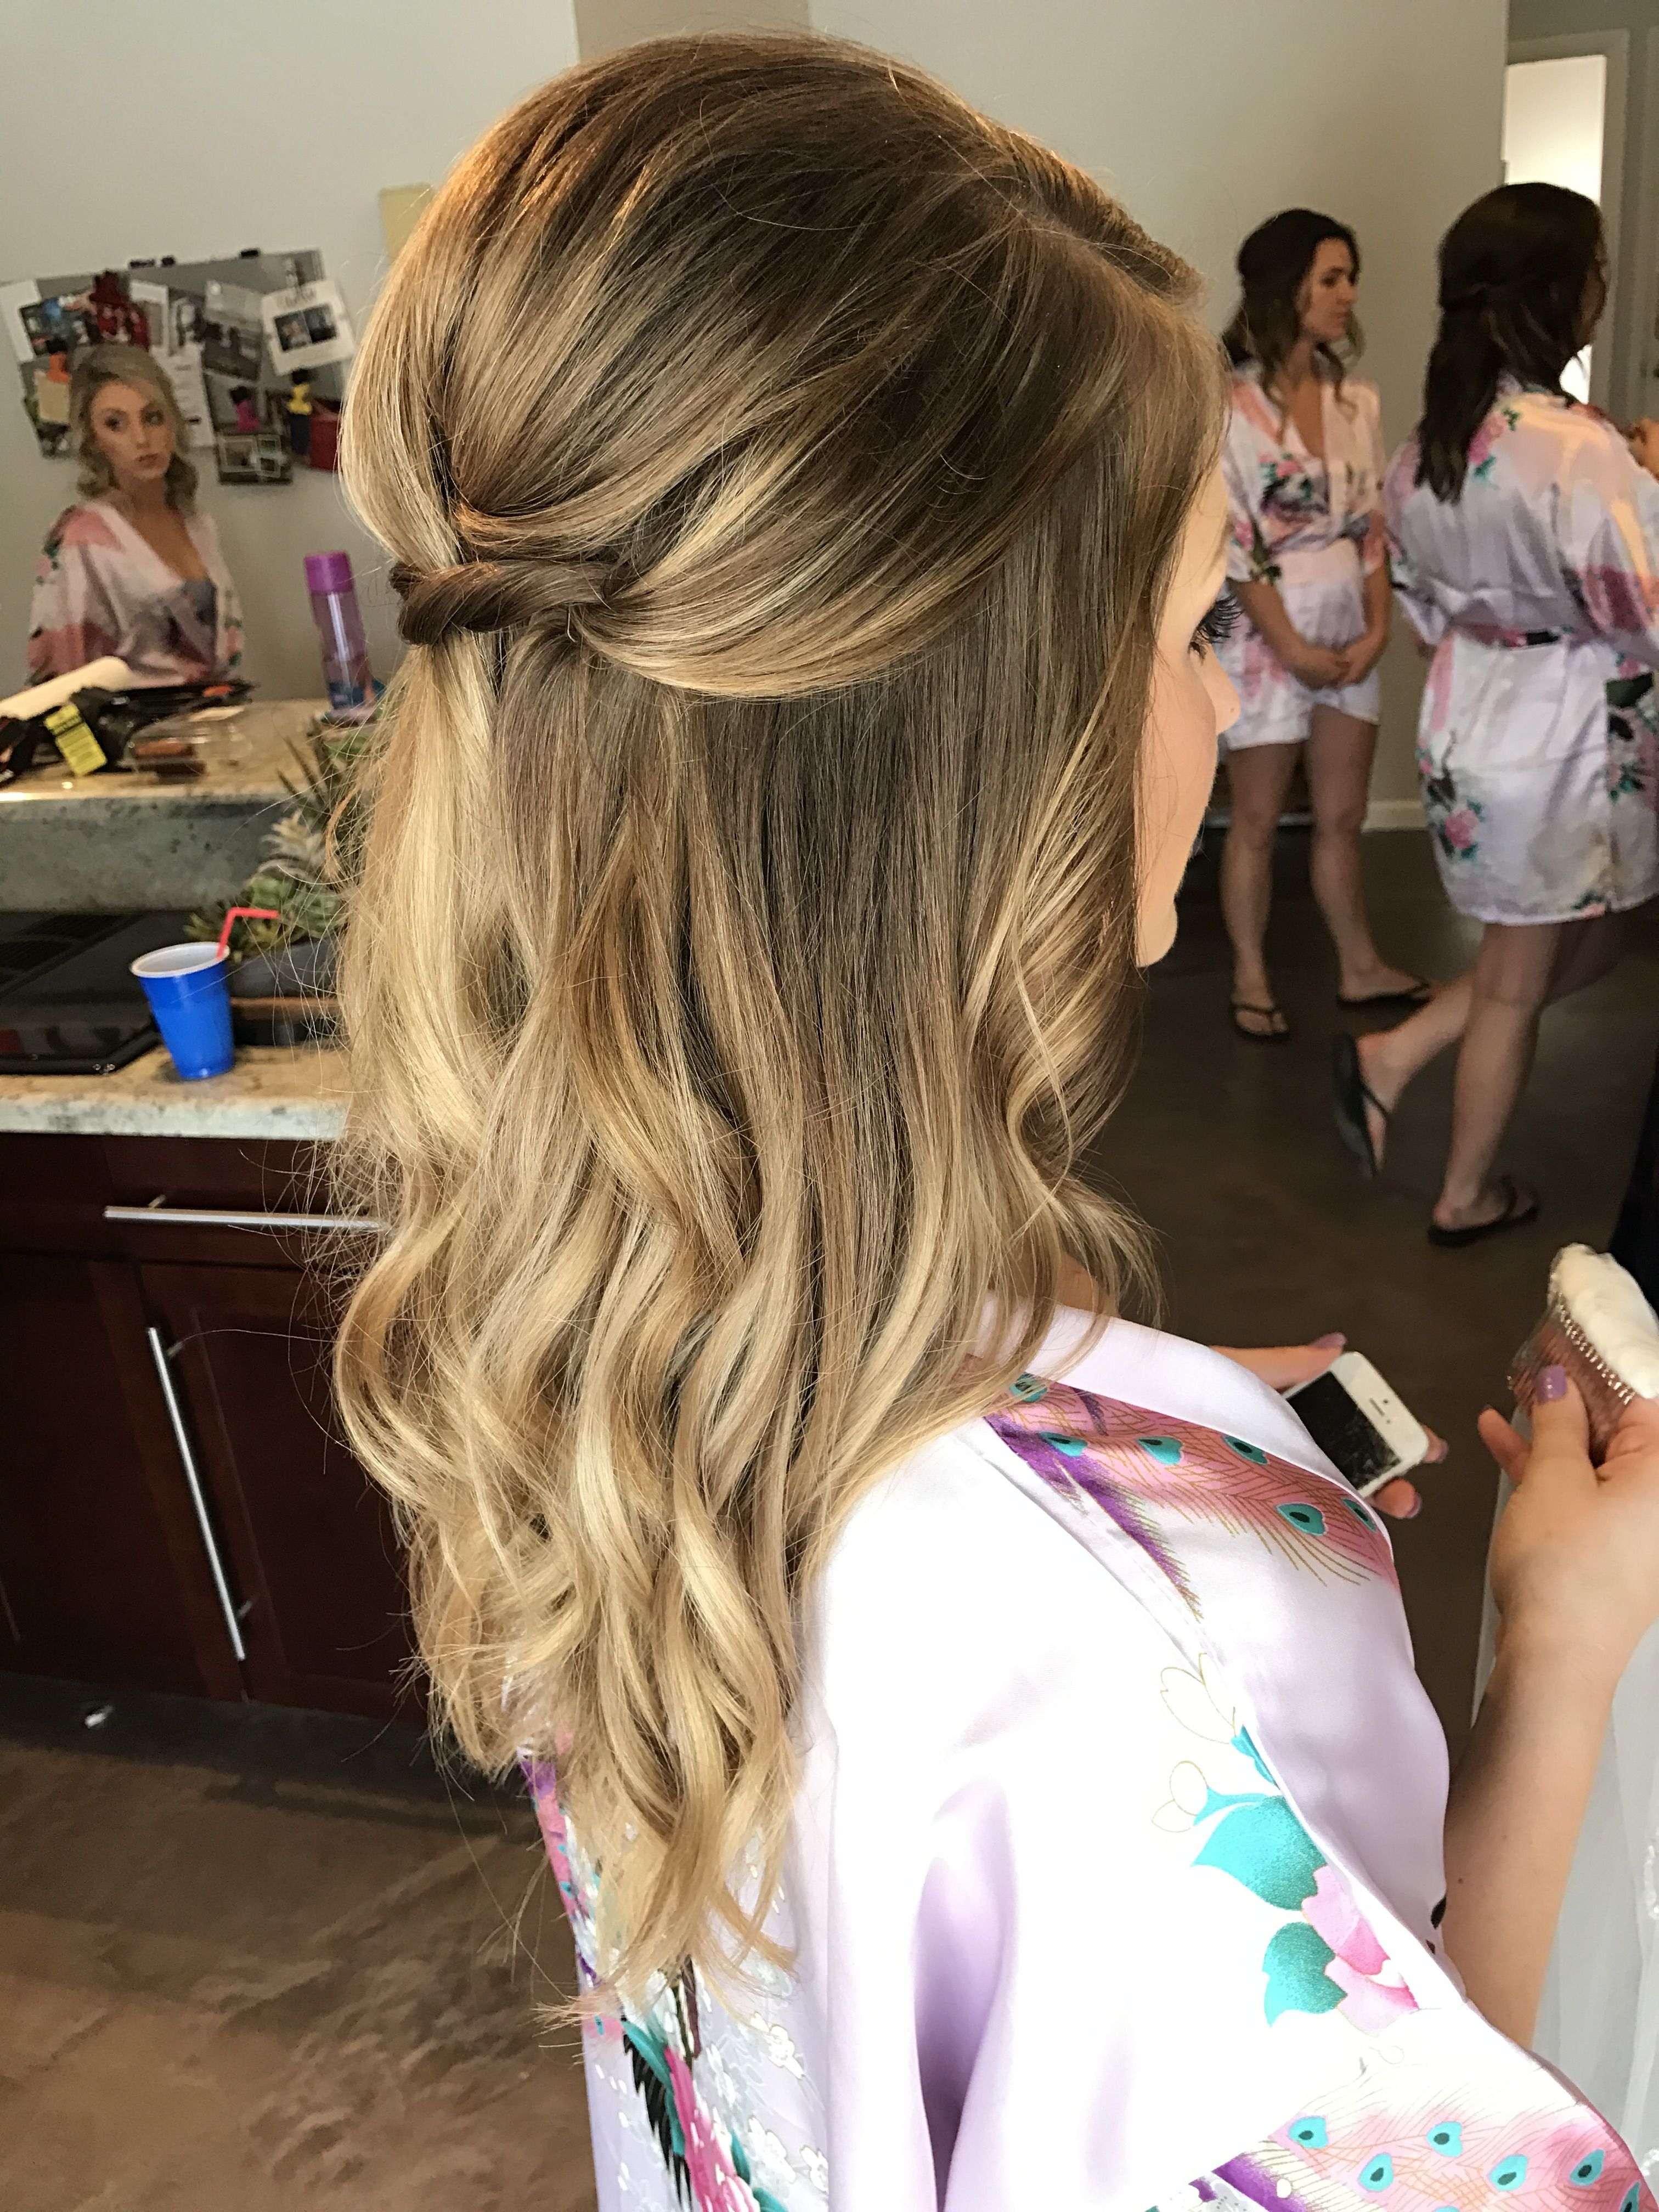 Bridesmaid Or Bridal Hairstyle! Loose Curls Half Up Half Down Updo Intended For Trendy Loose Updo Wedding Hairstyles With Whipped Curls (View 5 of 20)